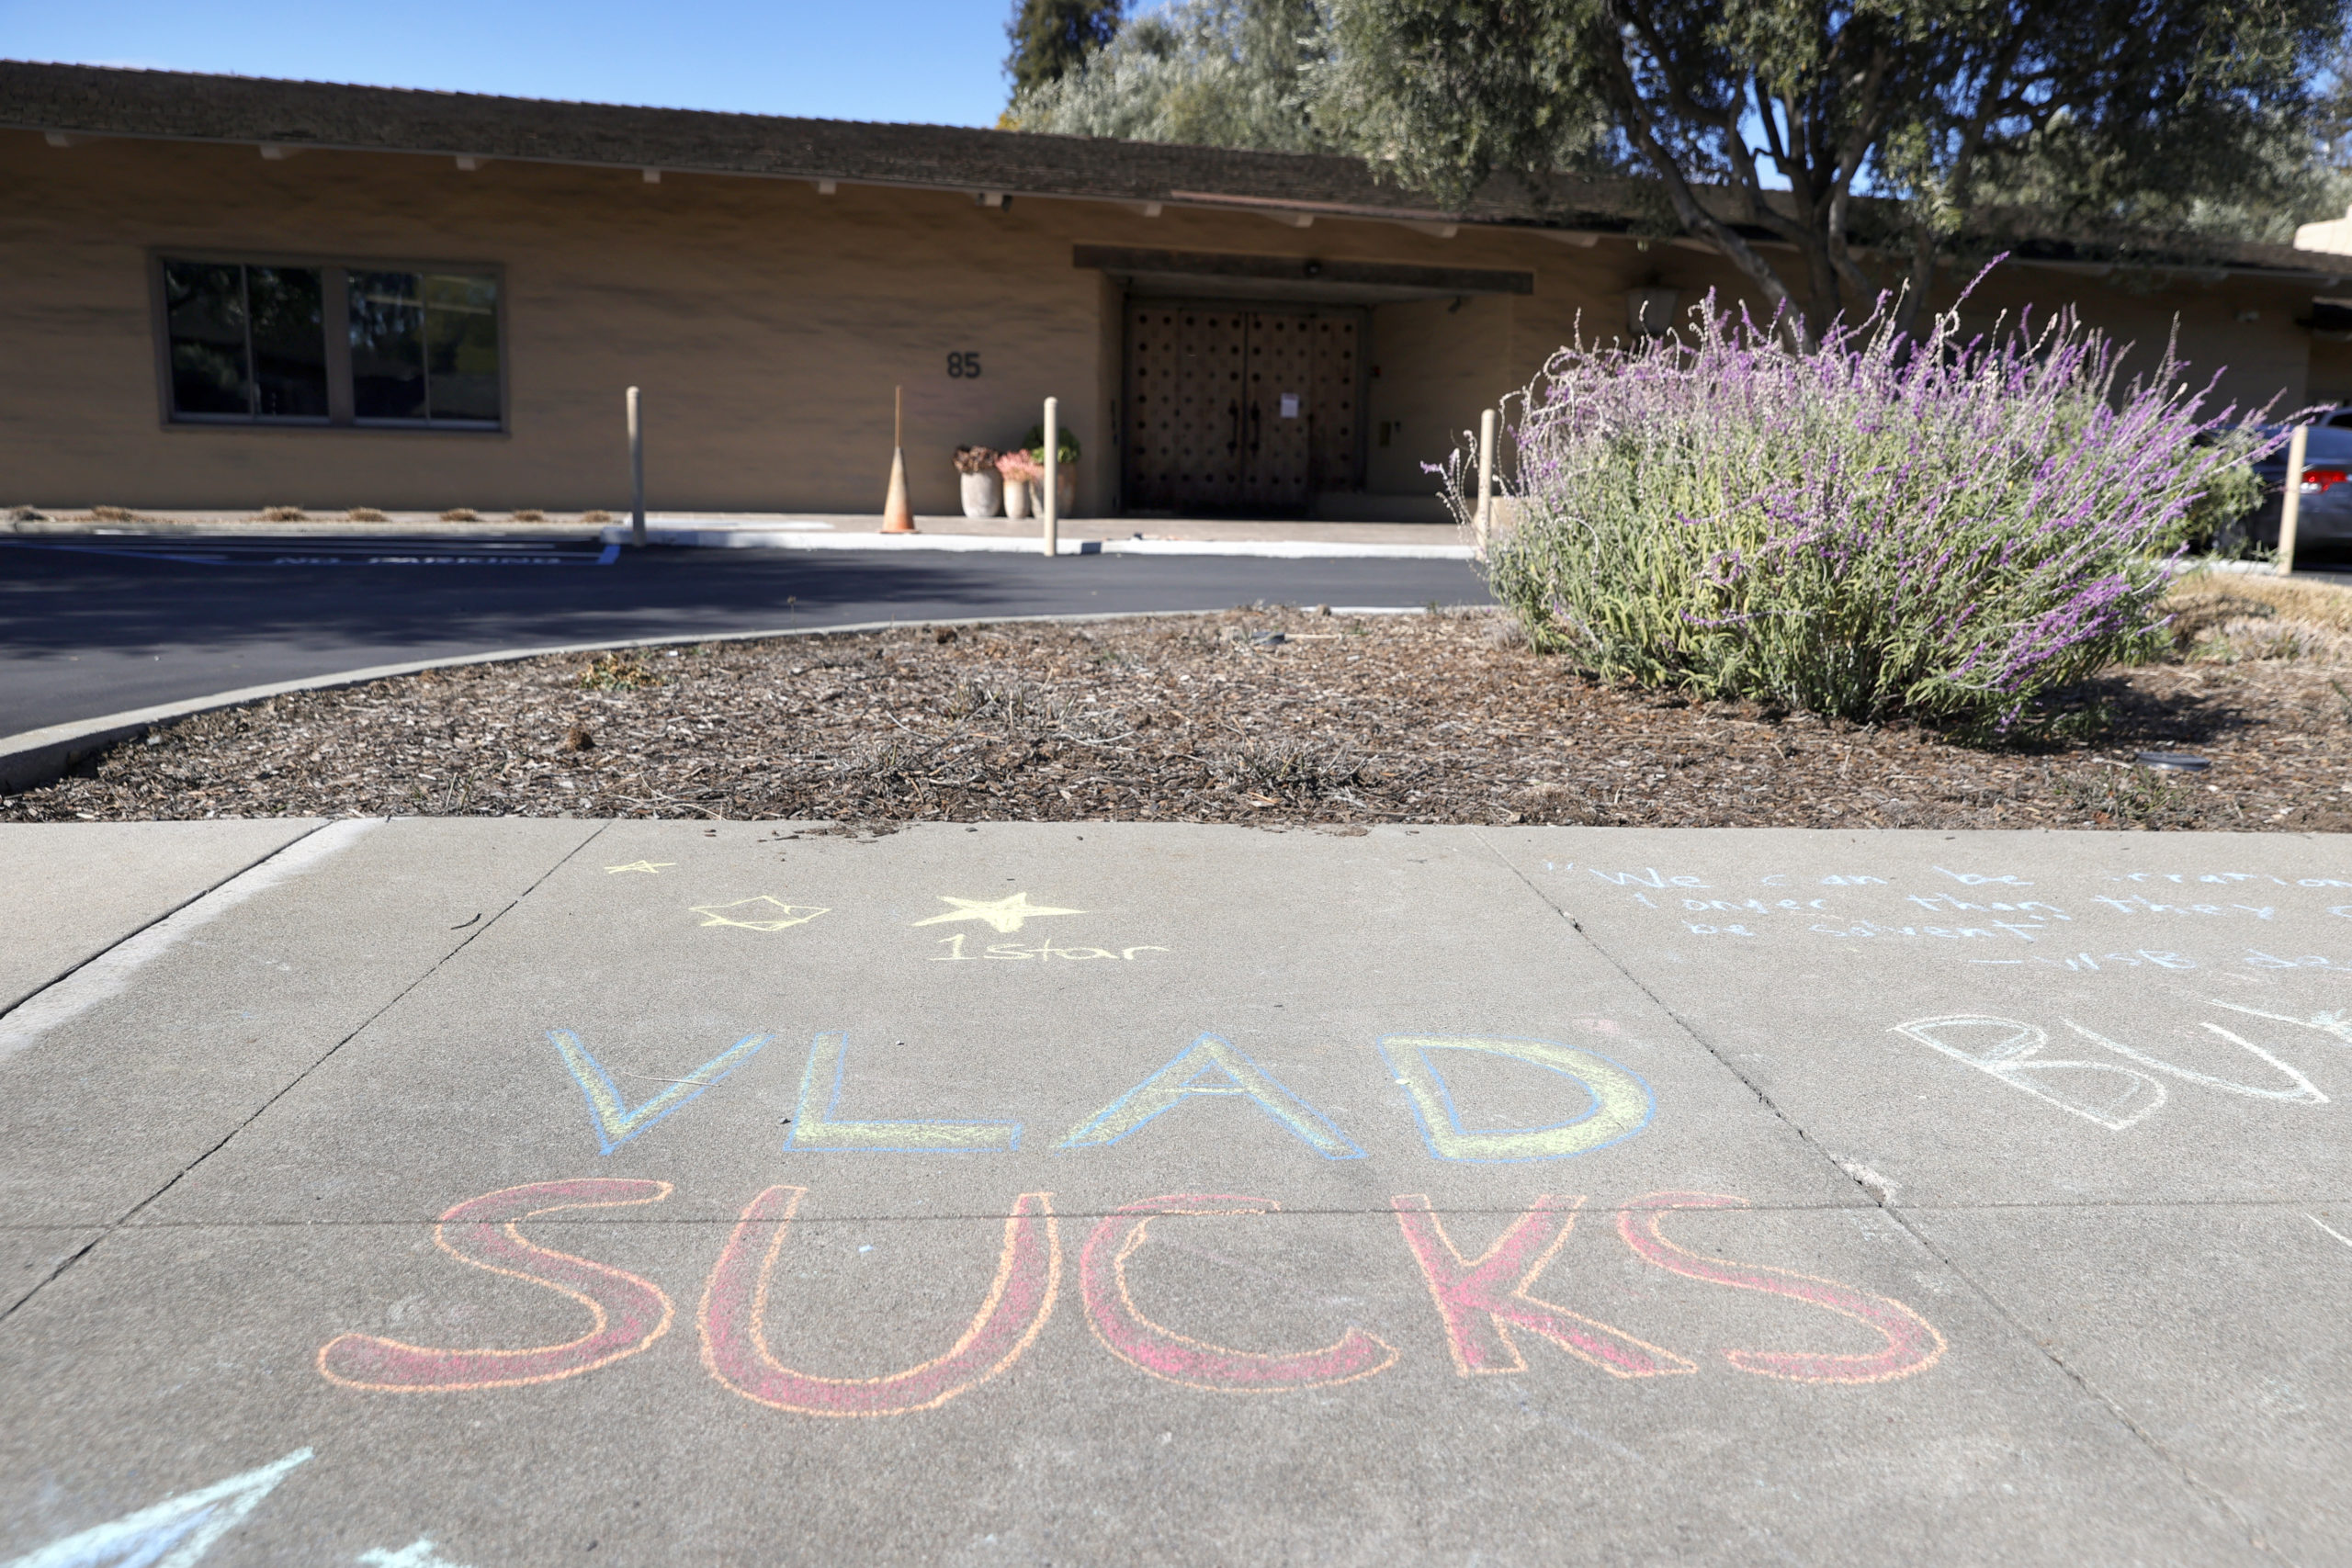 A chalk drawing referencing Vladimir Tenev, the co-founder of trading app Robinhood, is visible on the sidewalk in front of the company's headquarters on Monday in Menlo Park, California. (Justin Sullivan/Getty Images)